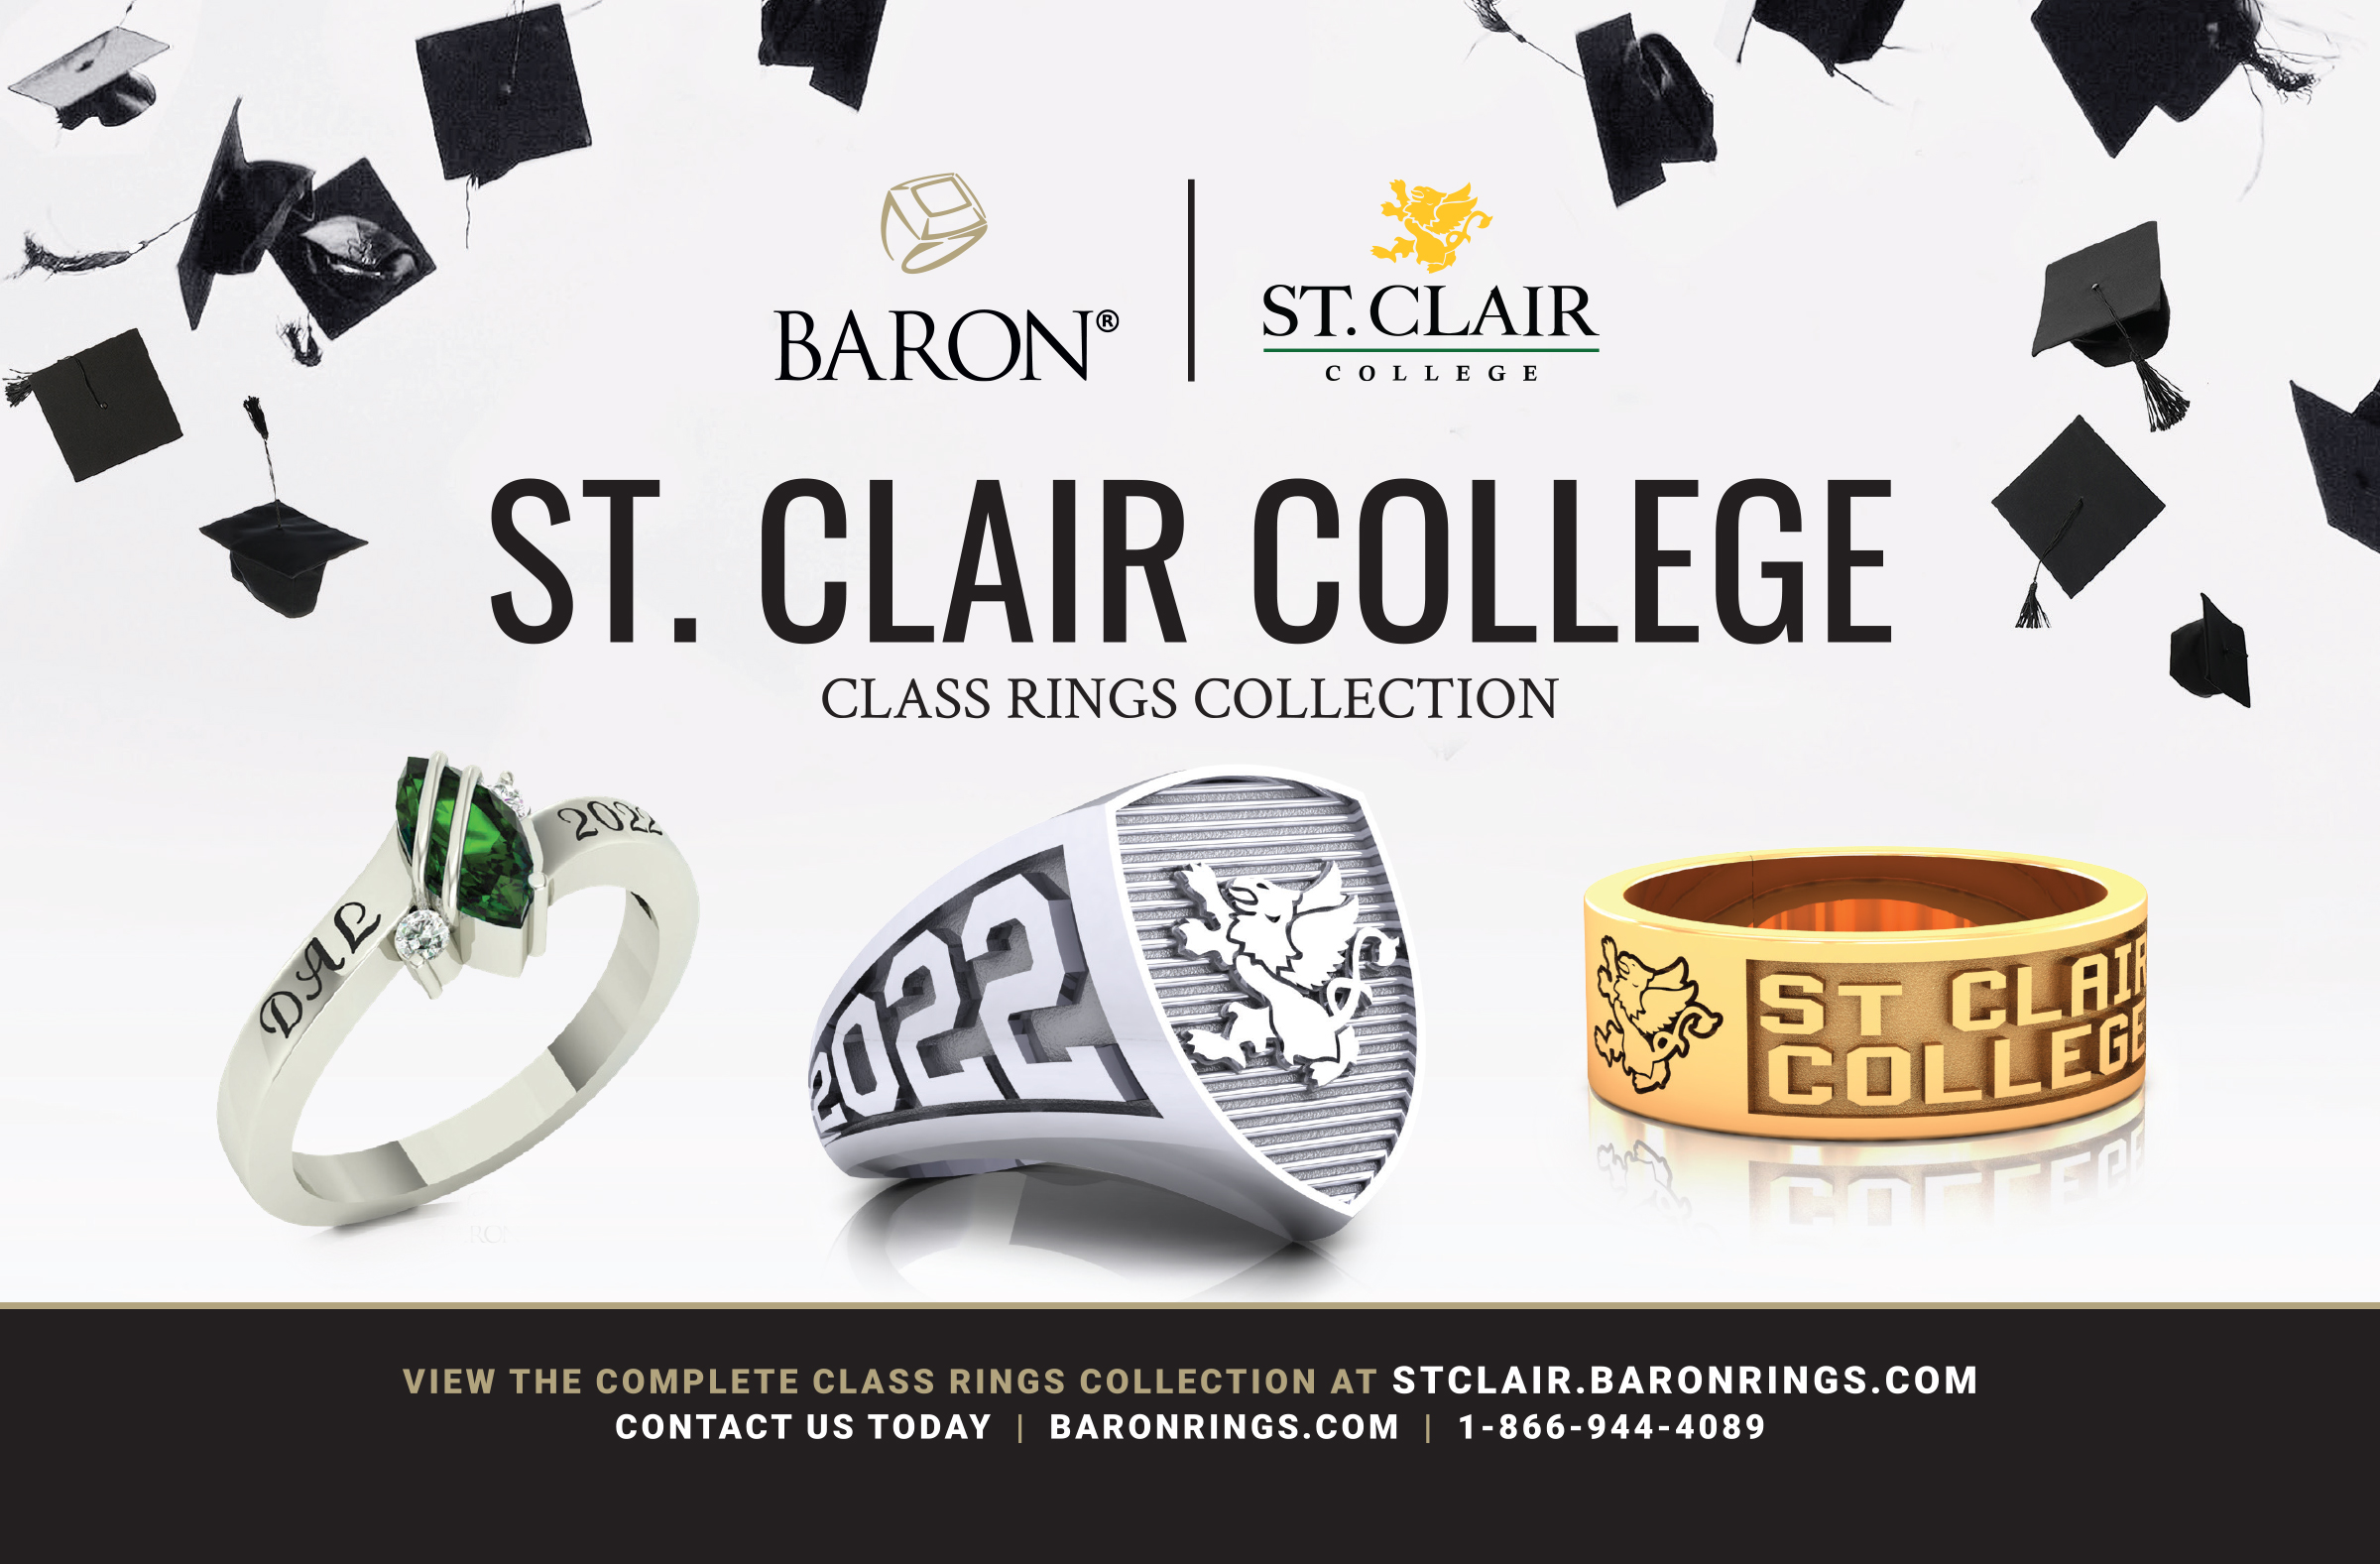 Class rings collection